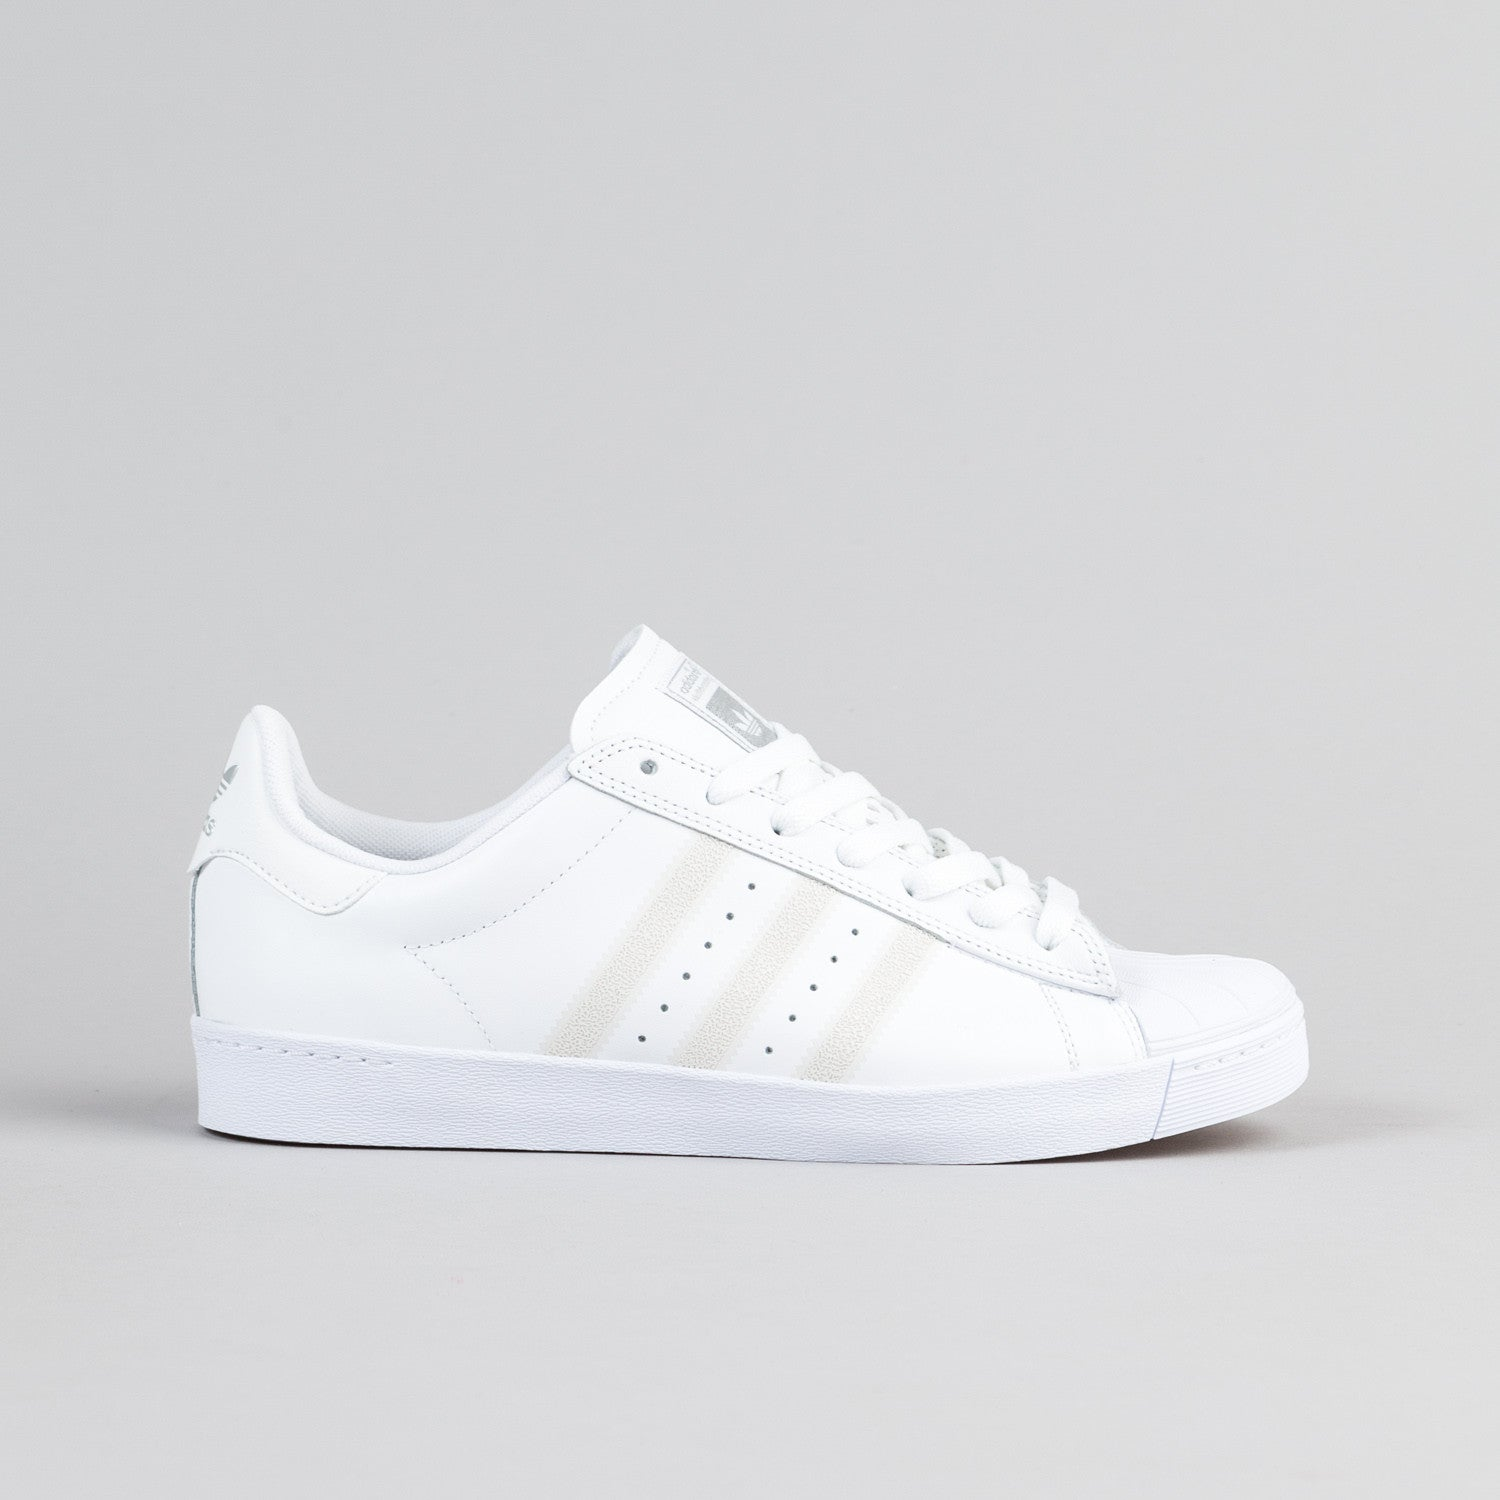 Adidas Skateboarding Superstar Vulc Adv, Adidas, Shoes Shipped